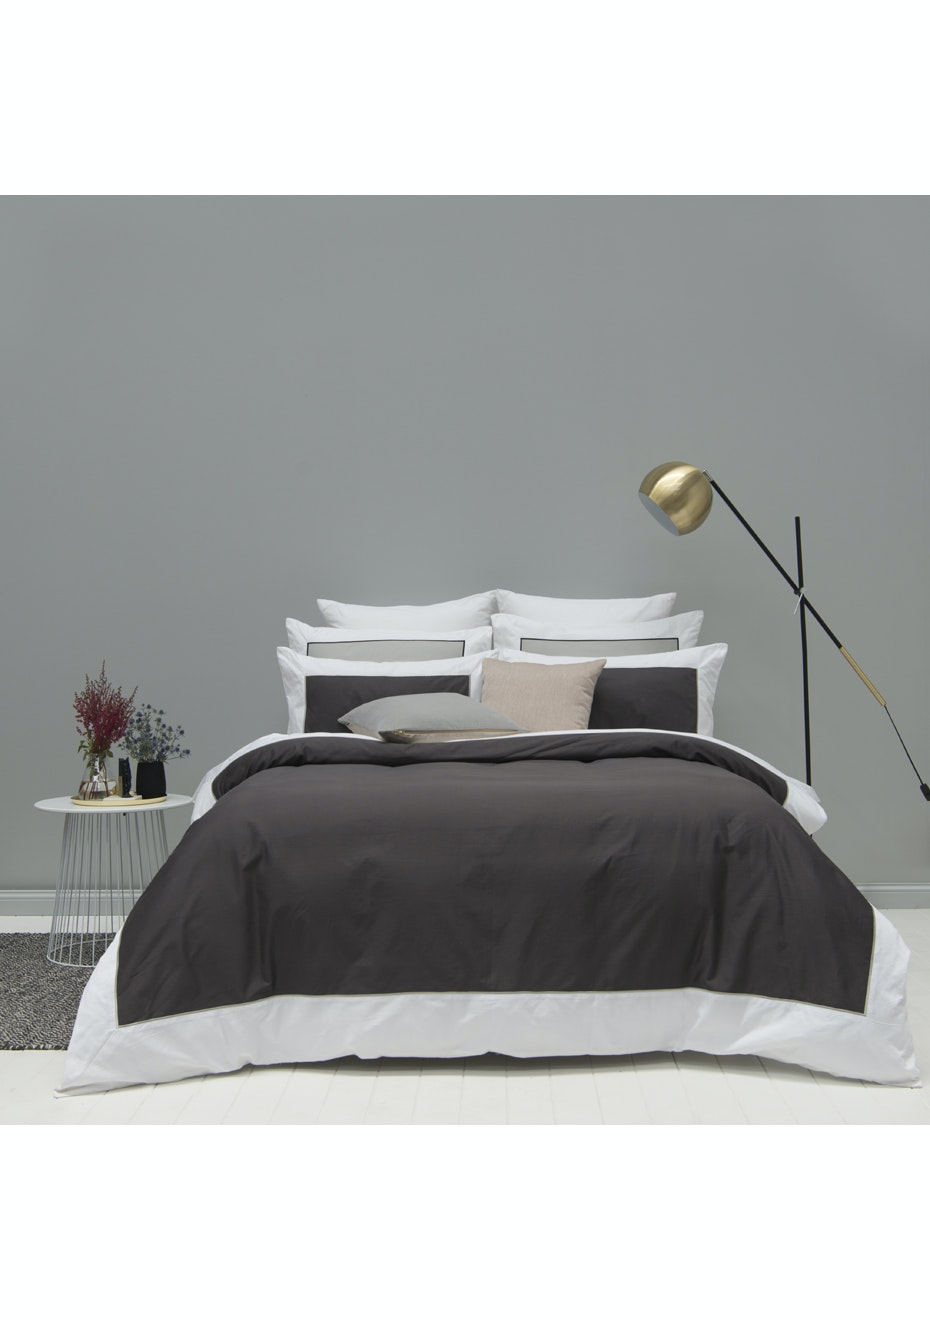 Style & Co 1000 Thread count Egyptian Cotton Hotel Collection Ascot Quilt Cover sets Super King Coal